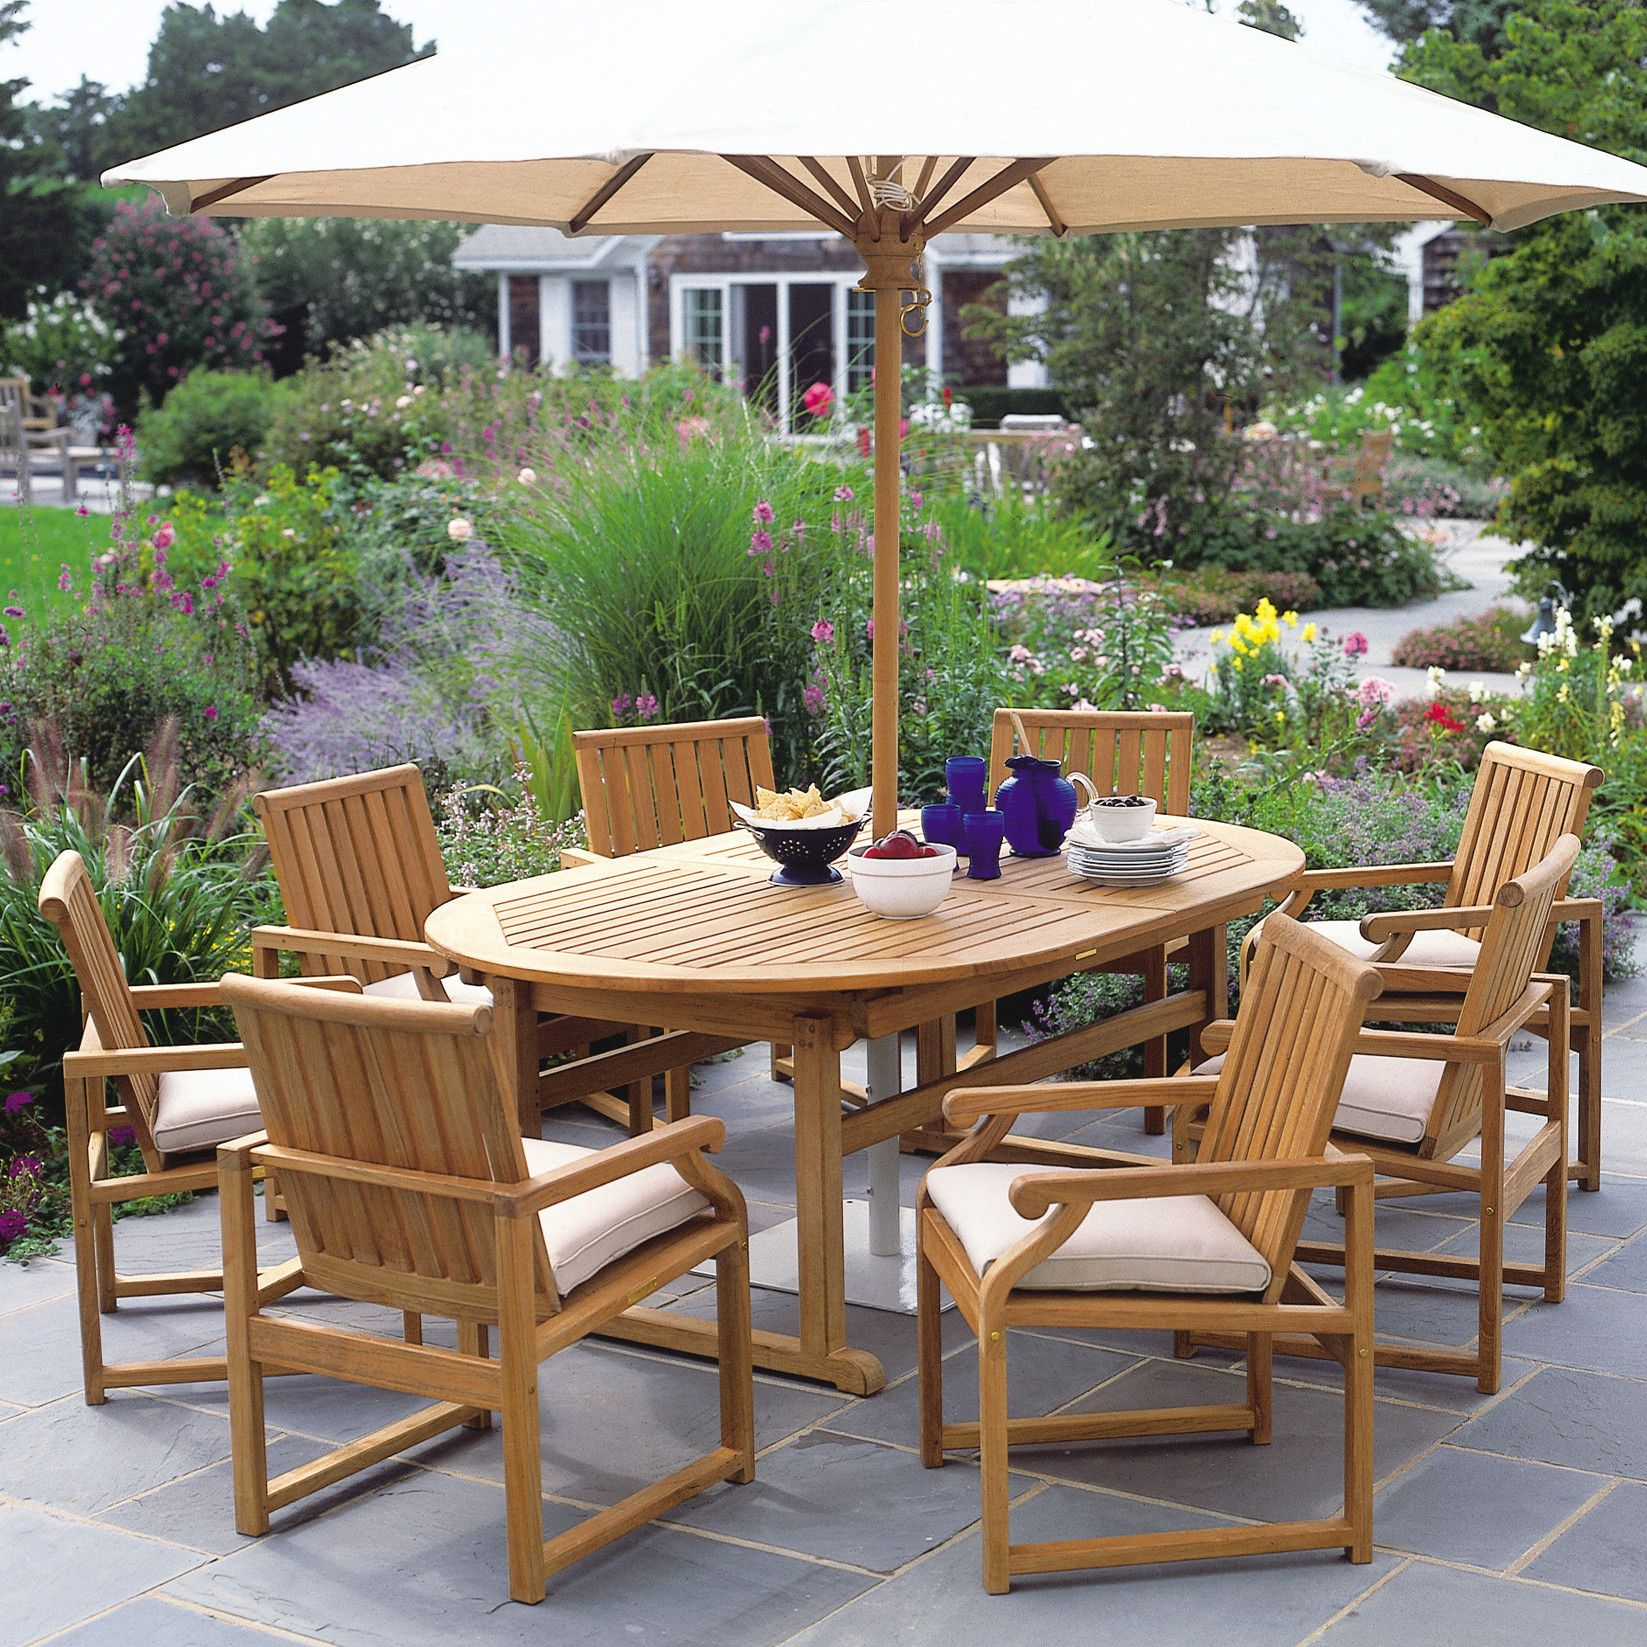 Essex Oval Extension Dining Table 100\